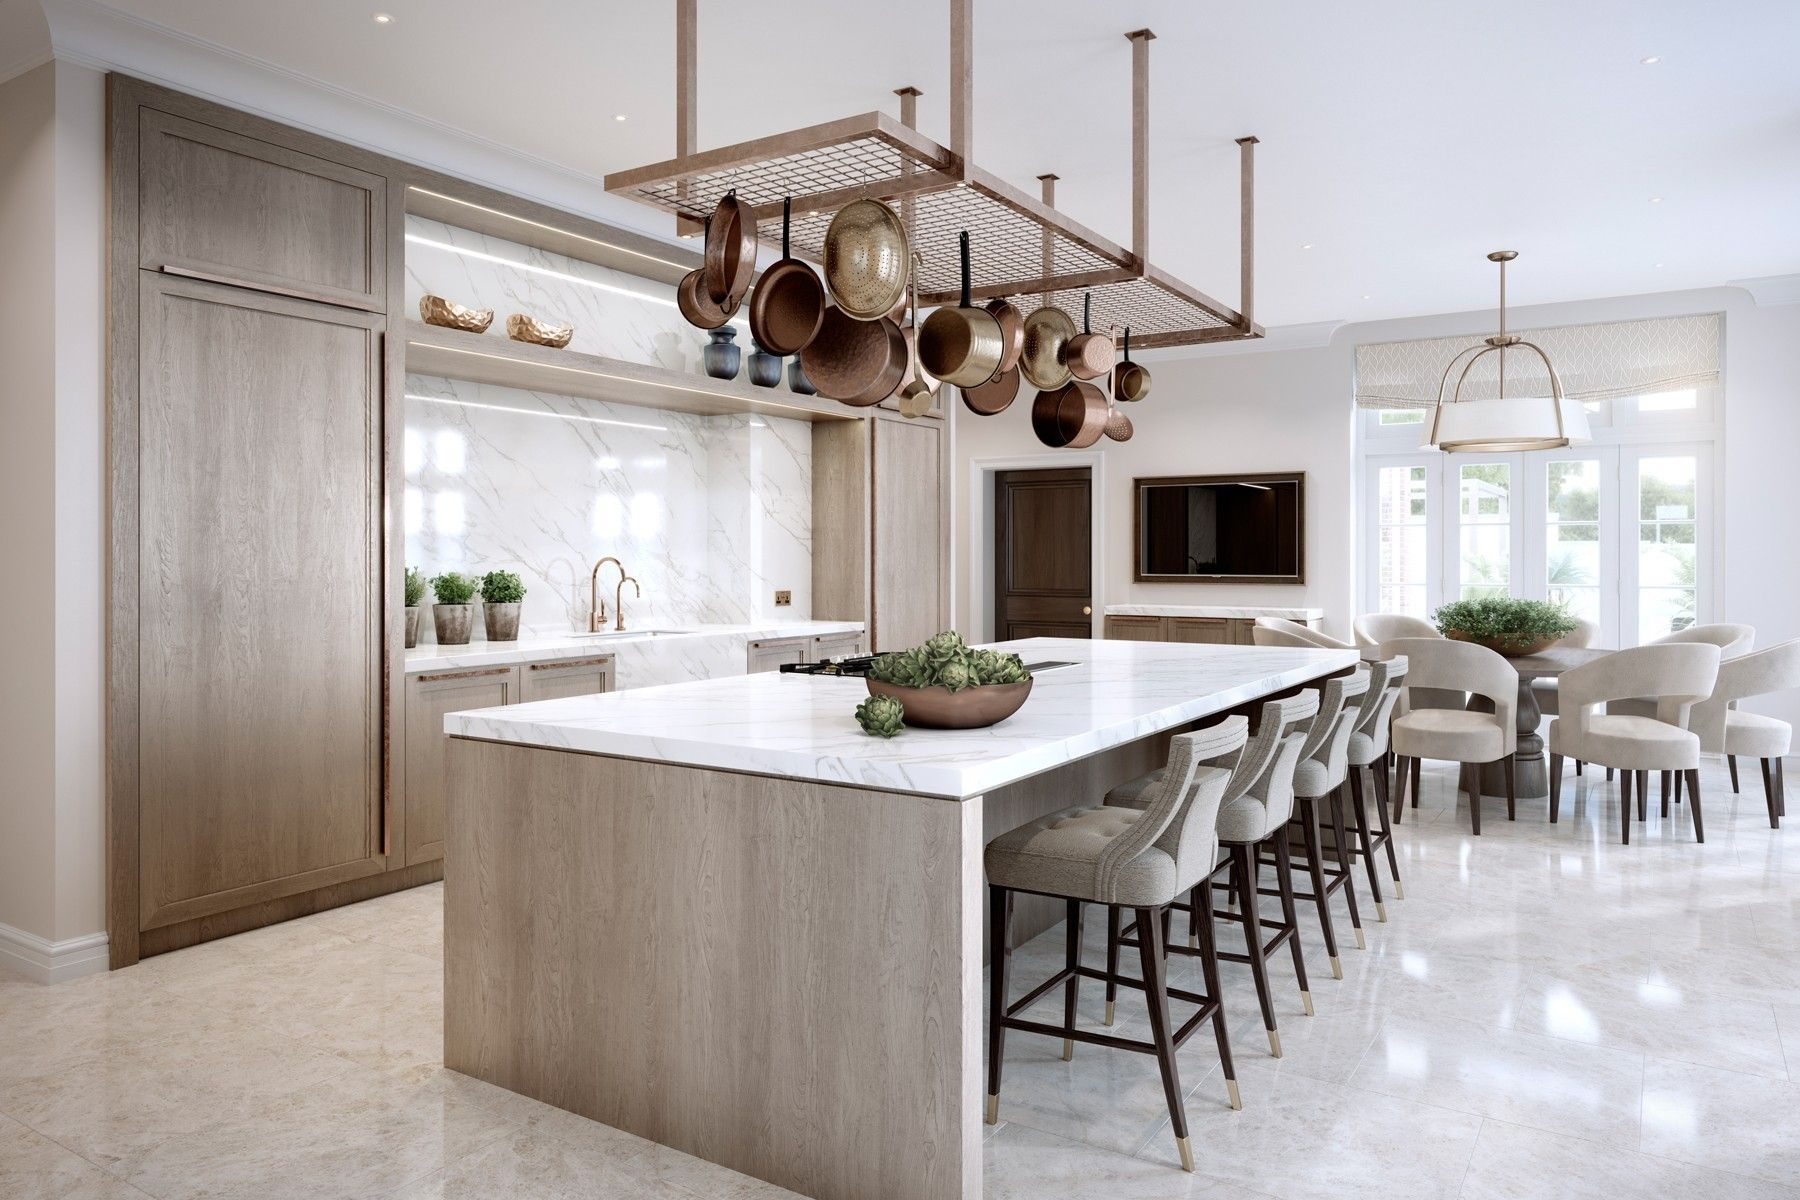 Kitchen Seating Ideas Surrey Family Home Luxury Interior